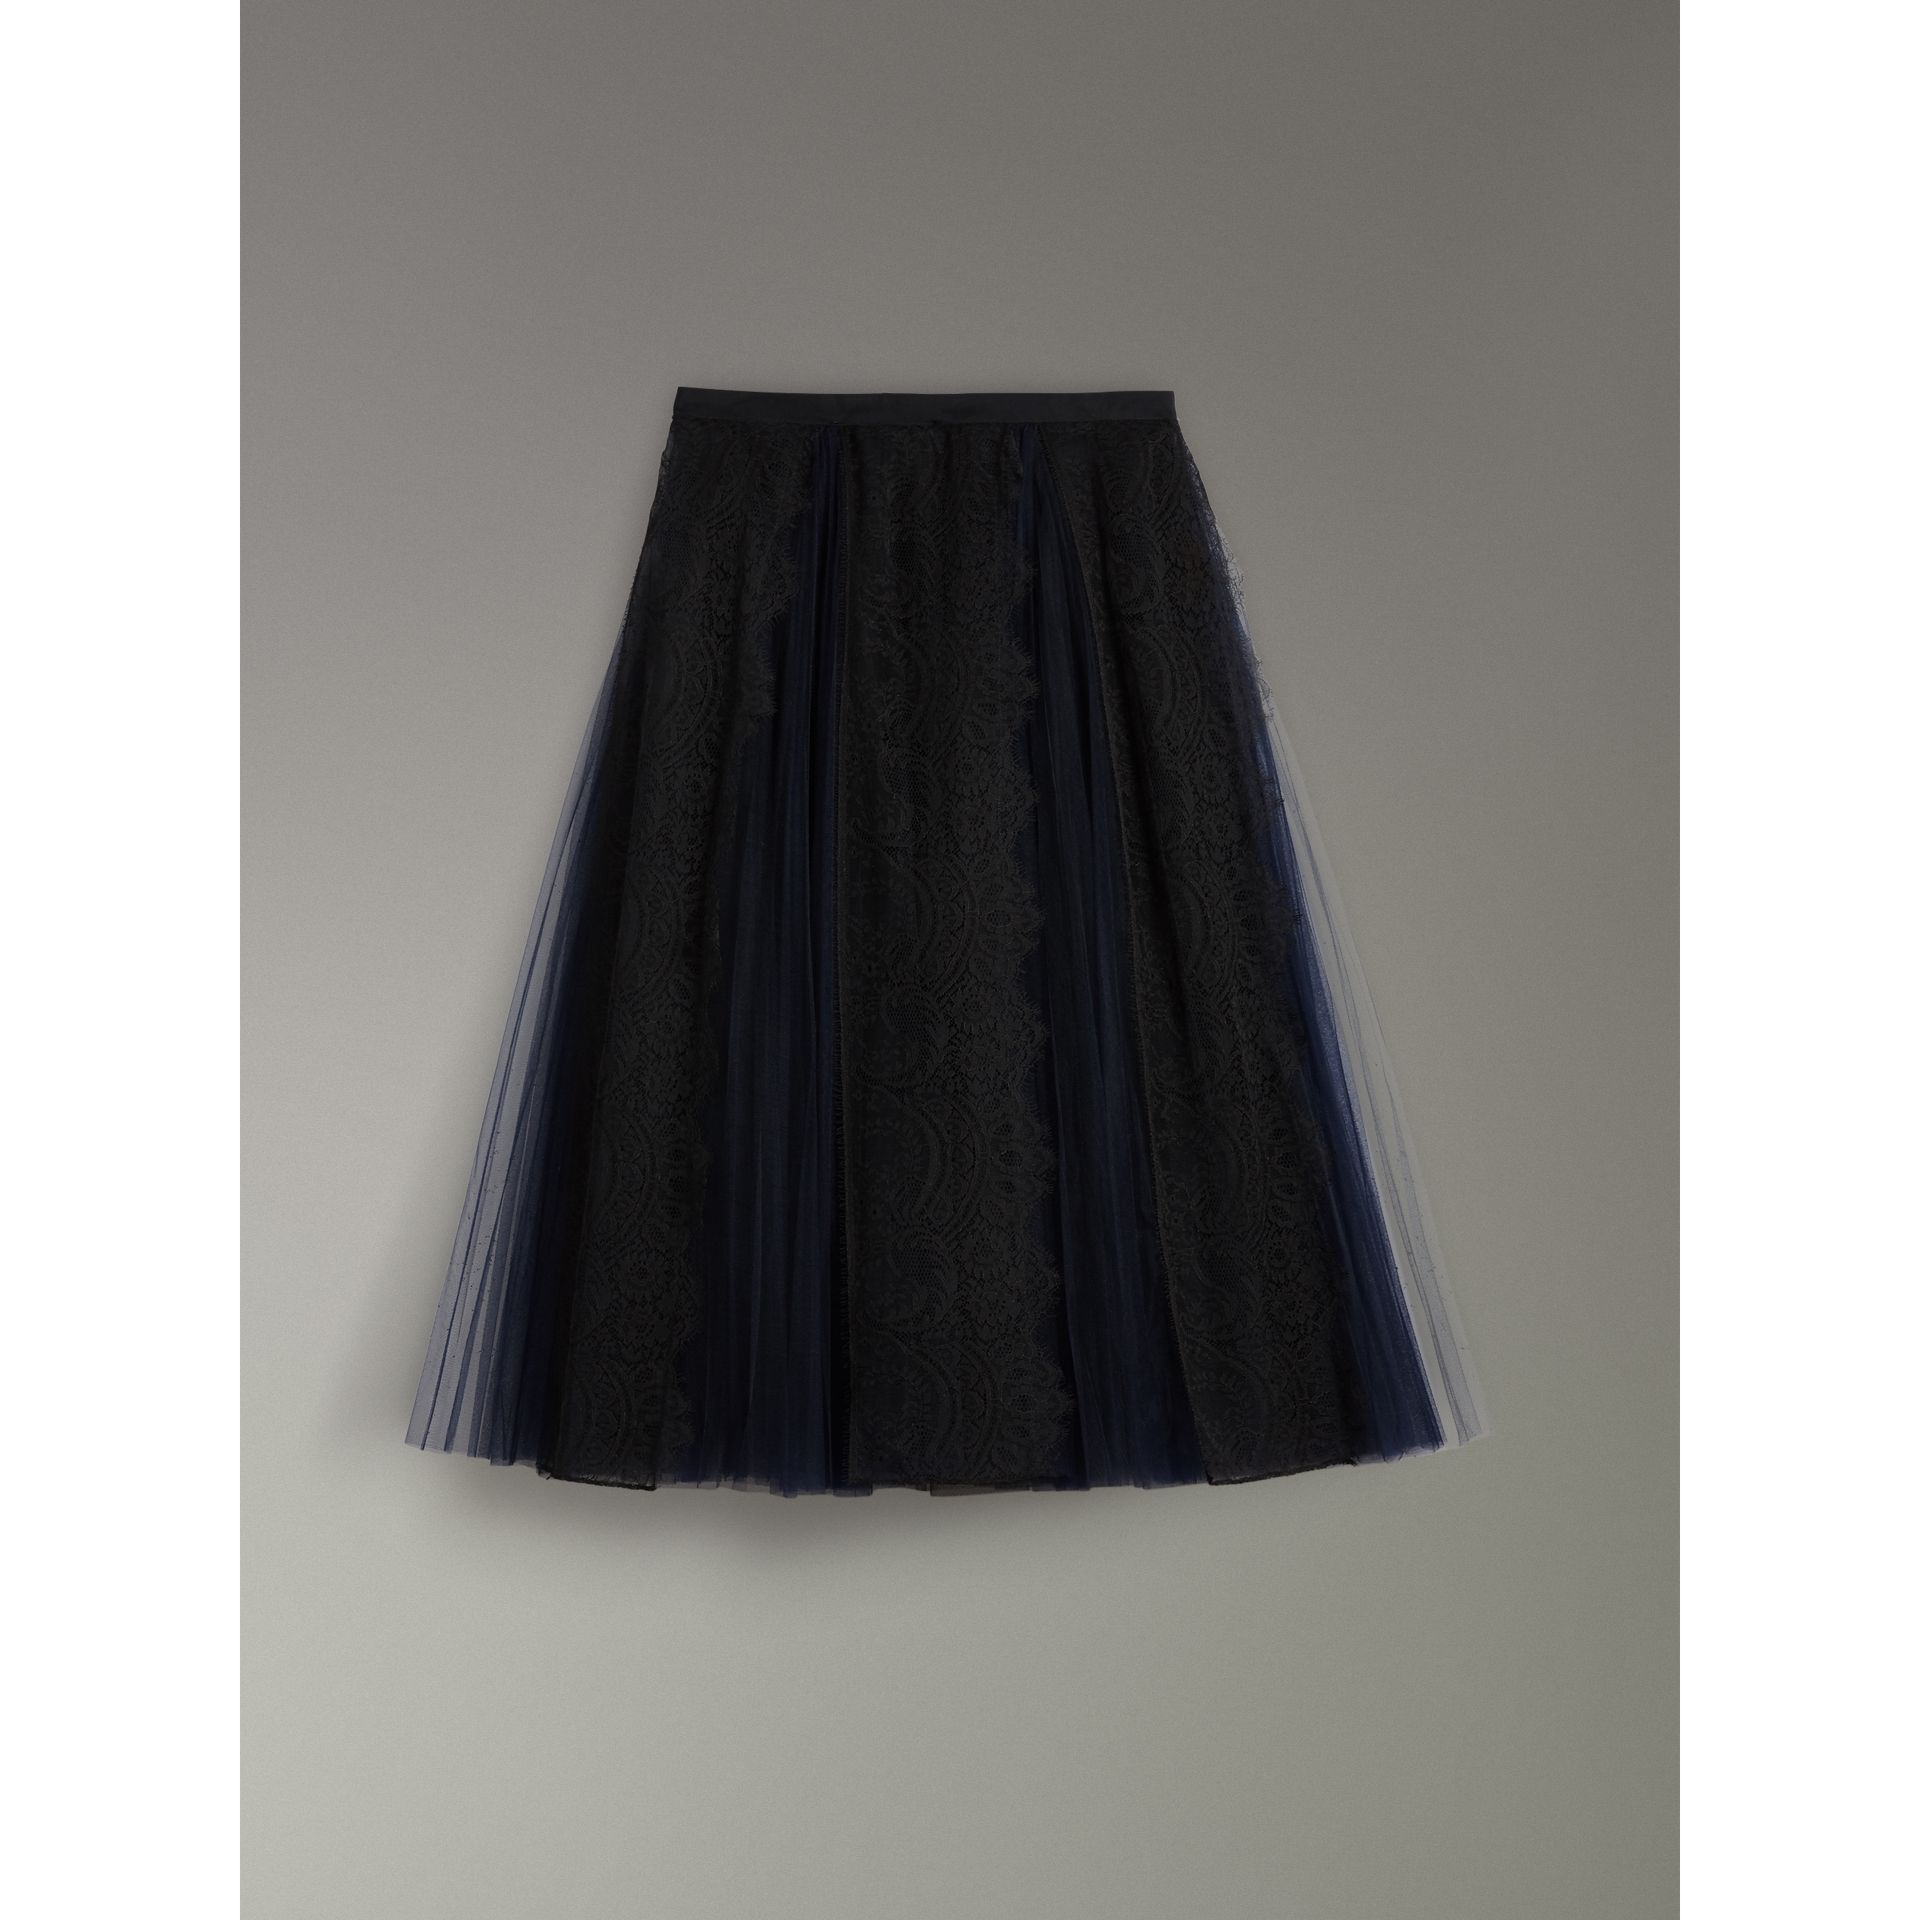 Lace Panel Pleated Tulle Skirt in Navy - Women | Burberry Australia - gallery image 3